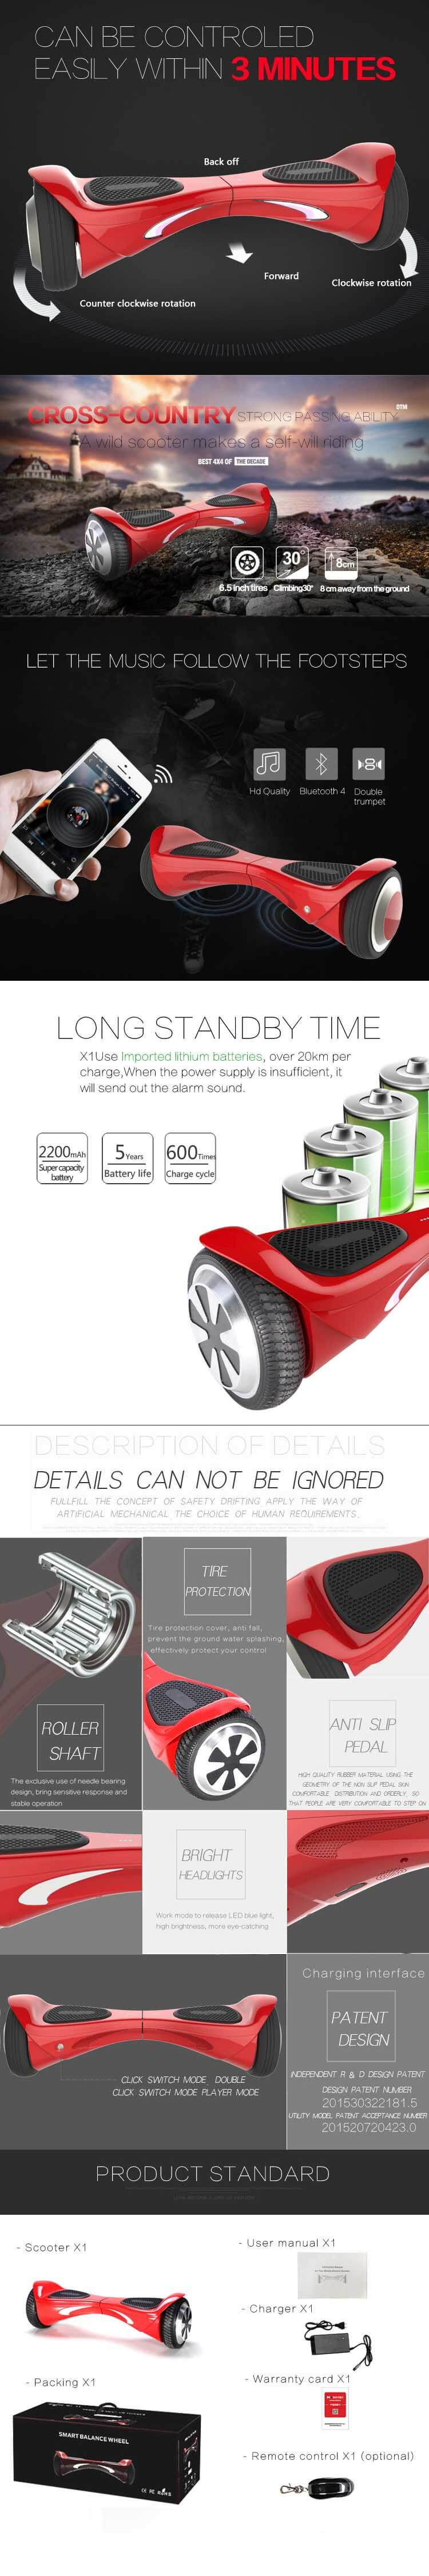 2015-Smart-with-LED-Lights-Bluetooth-Speaker-Self-Balance-2-Wheels-Scooter